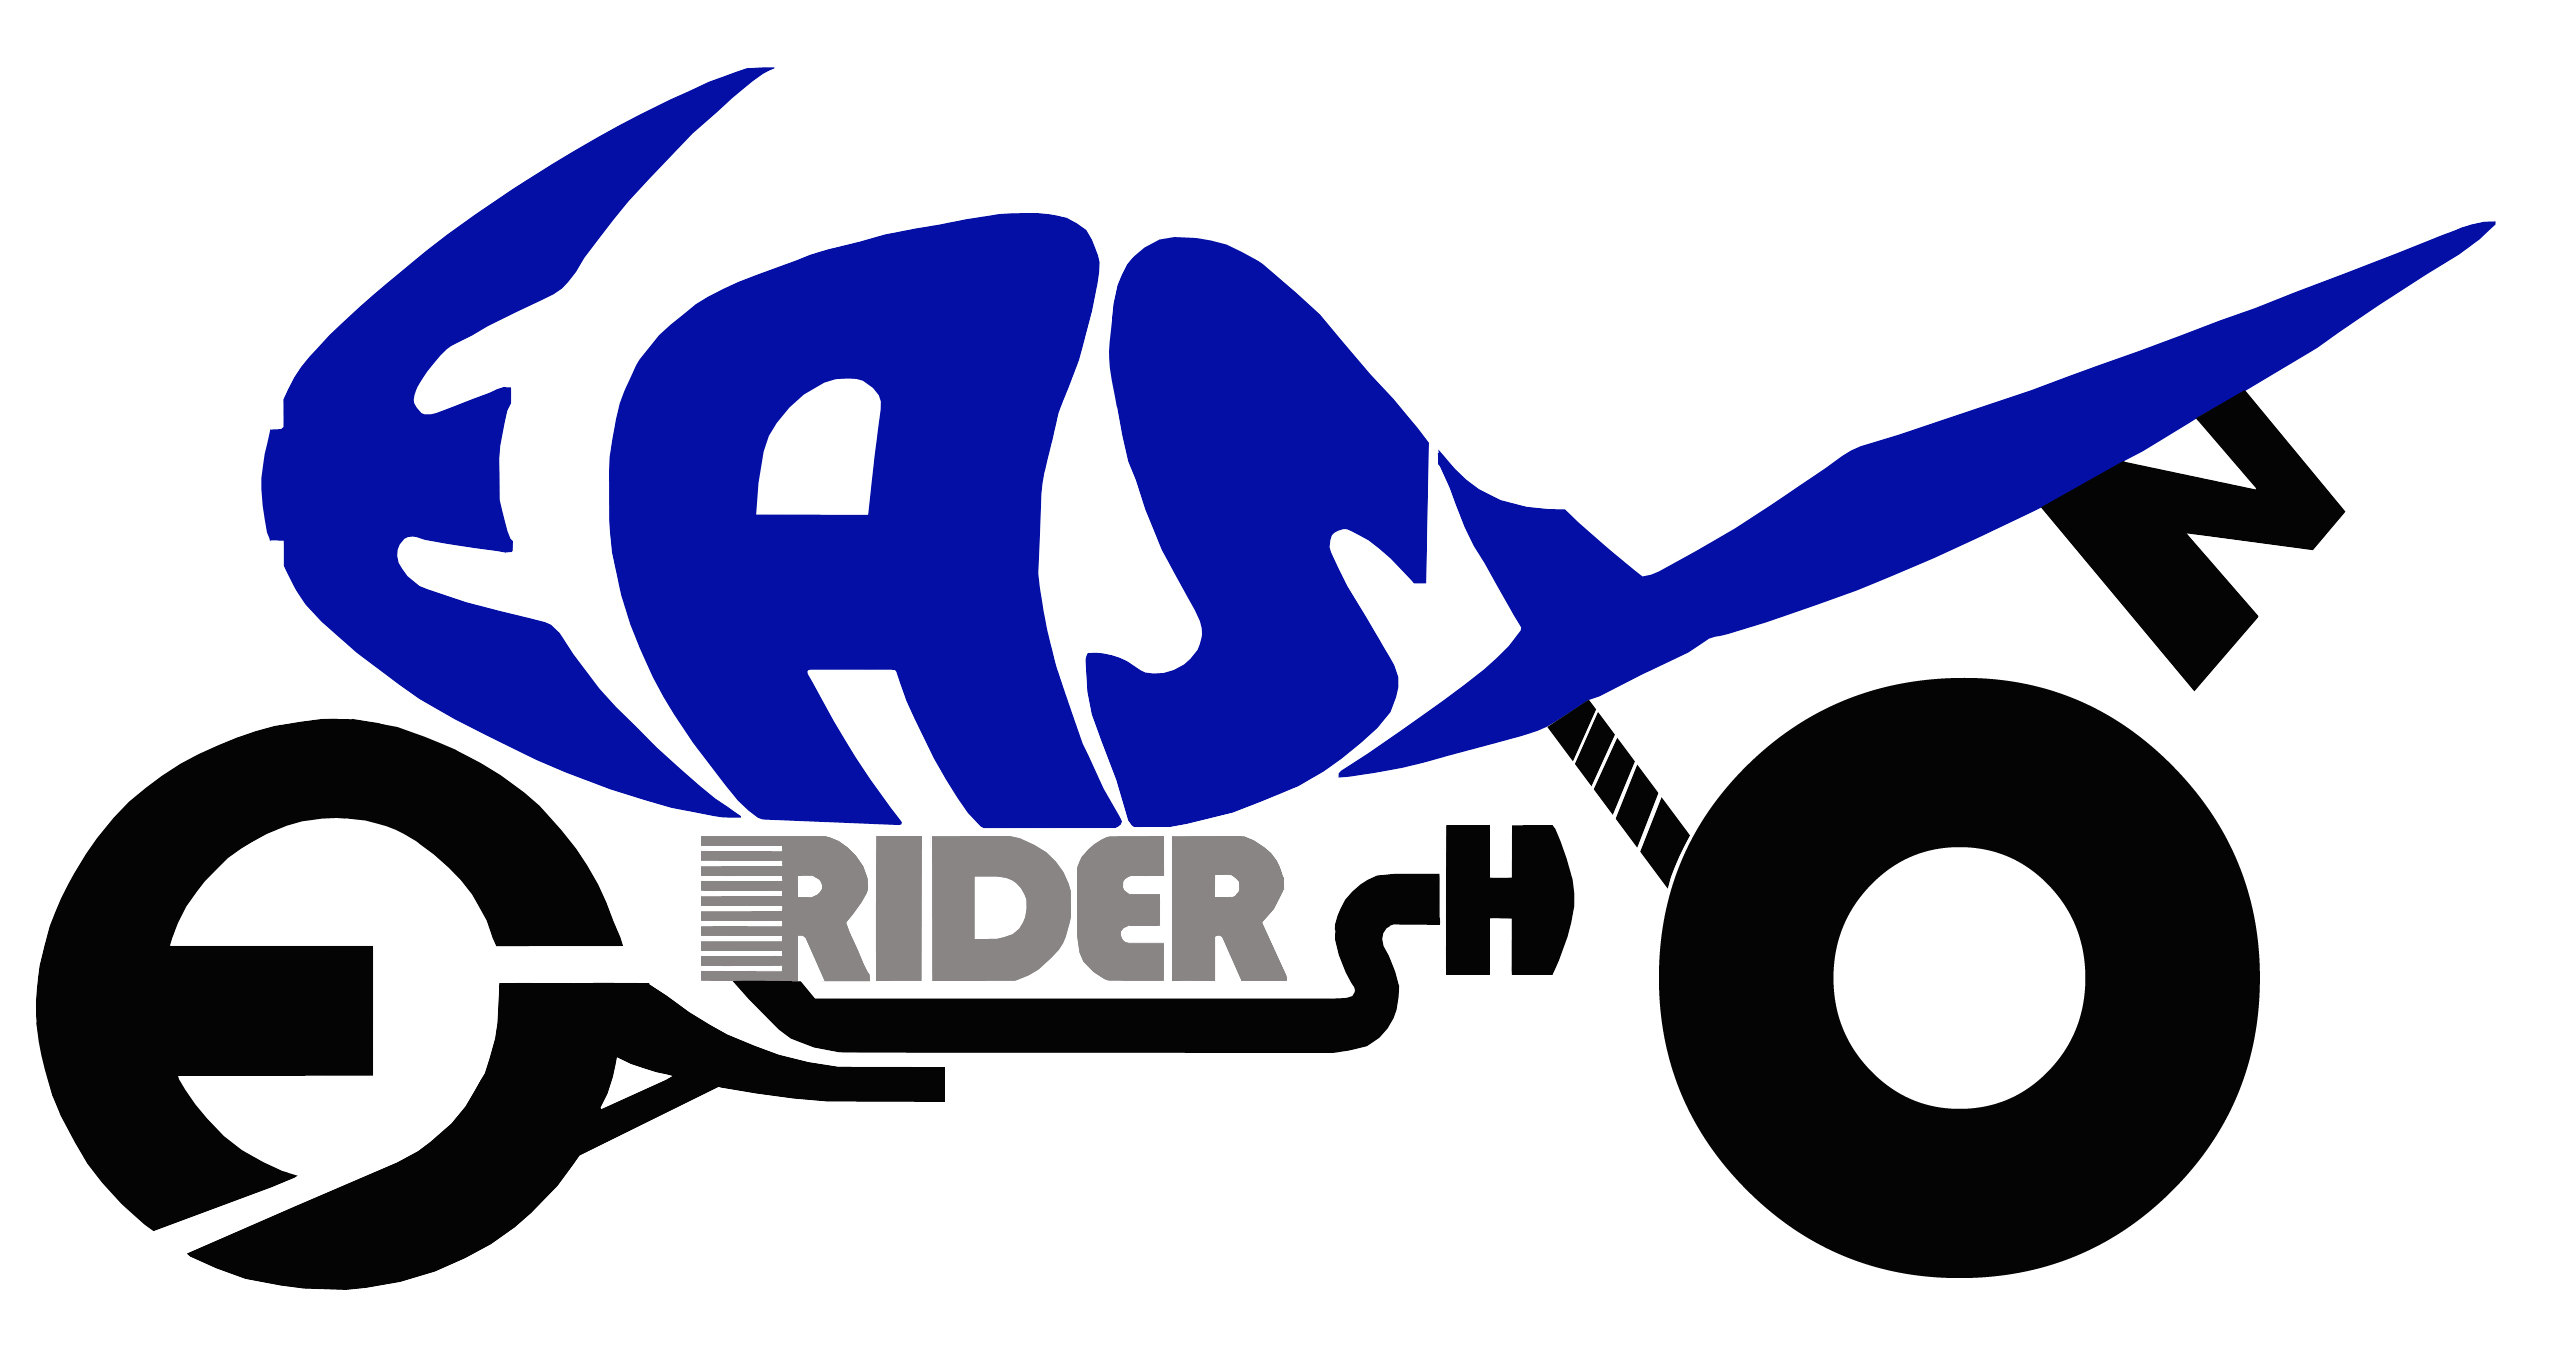 Easy Rider Fashion Logo